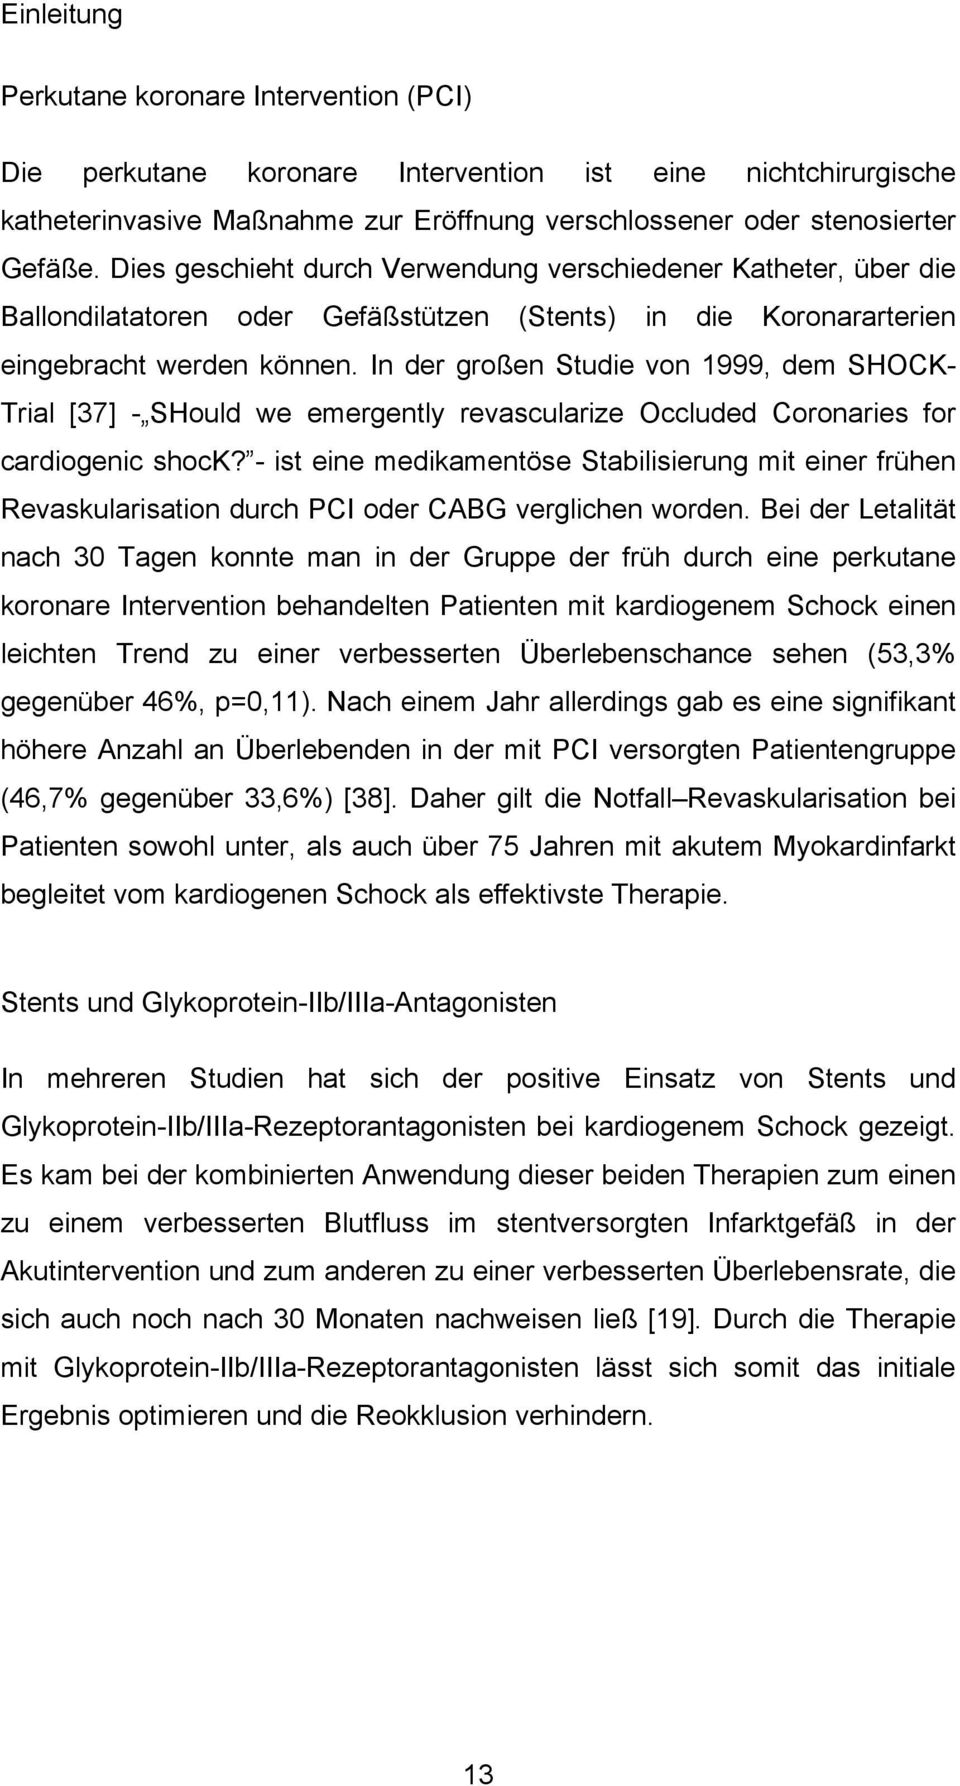 In der großen Studie von 1999, dem SHOCK- Trial [37] - SHould we emergently revascularize Occluded Coronaries for cardiogenic shock?